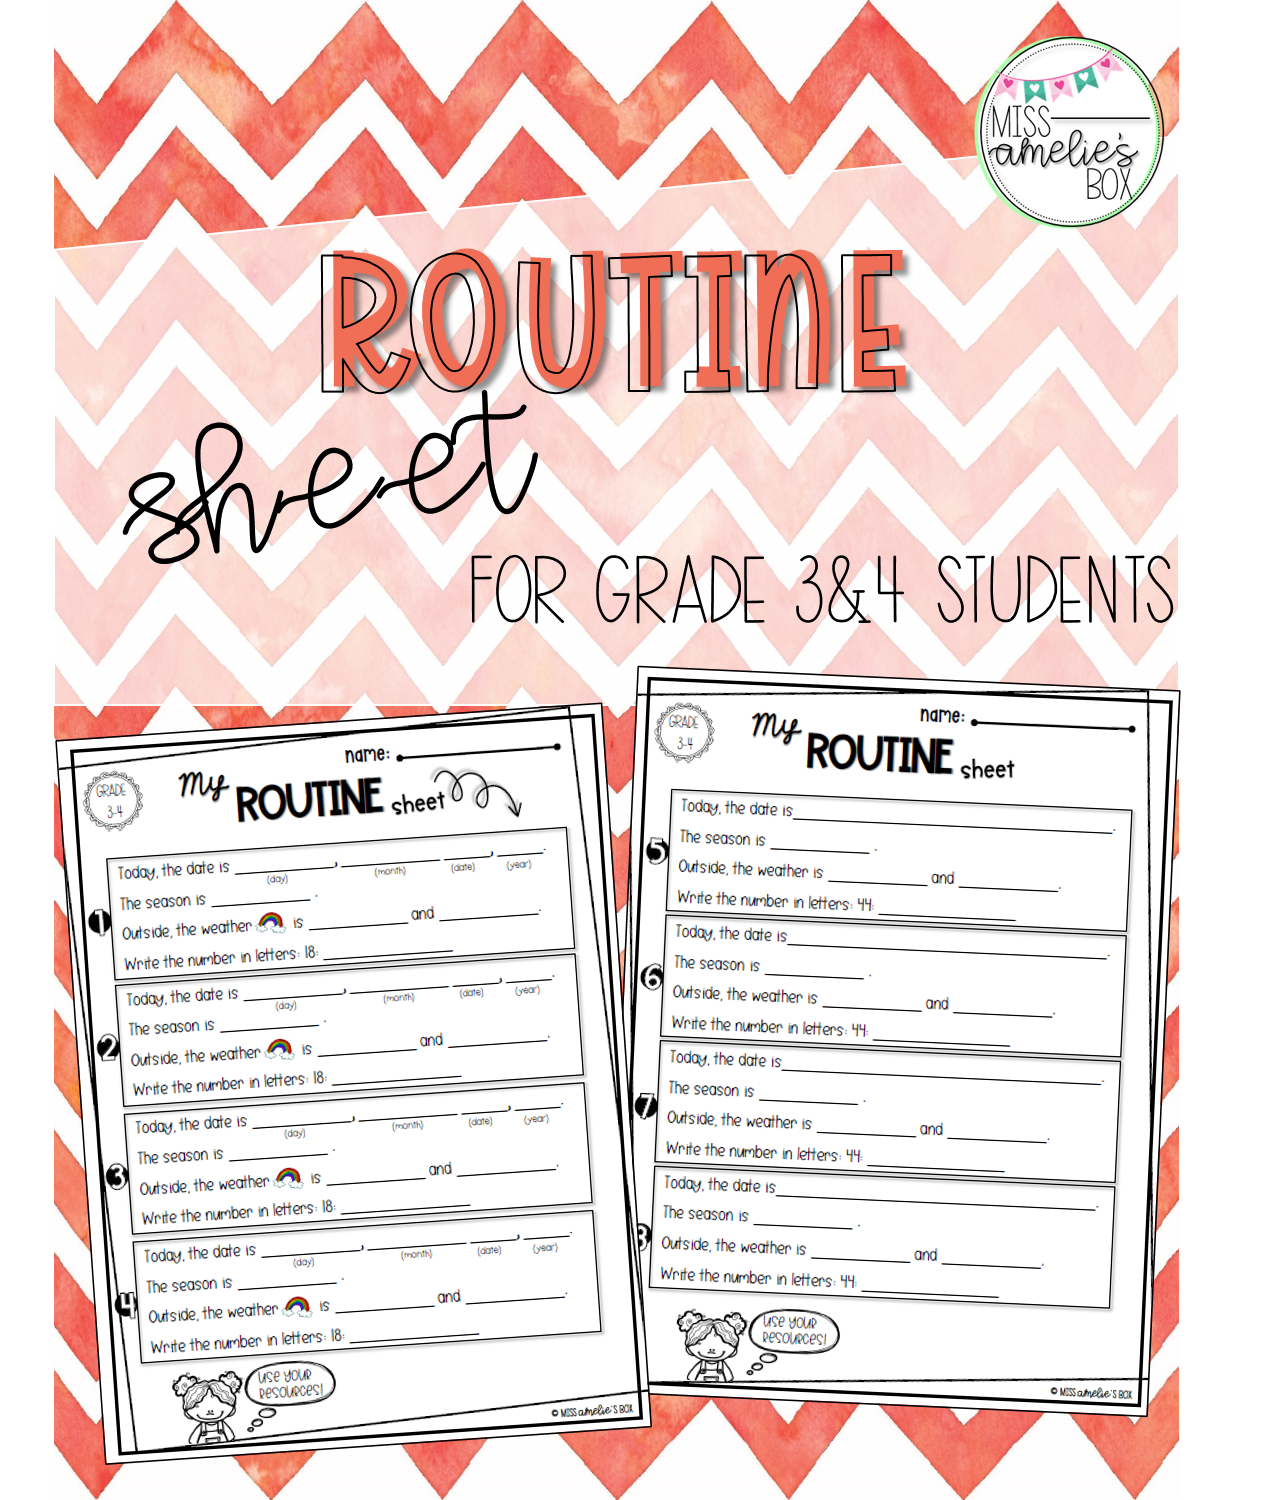 Routine Sheet For Cycle 2 Students